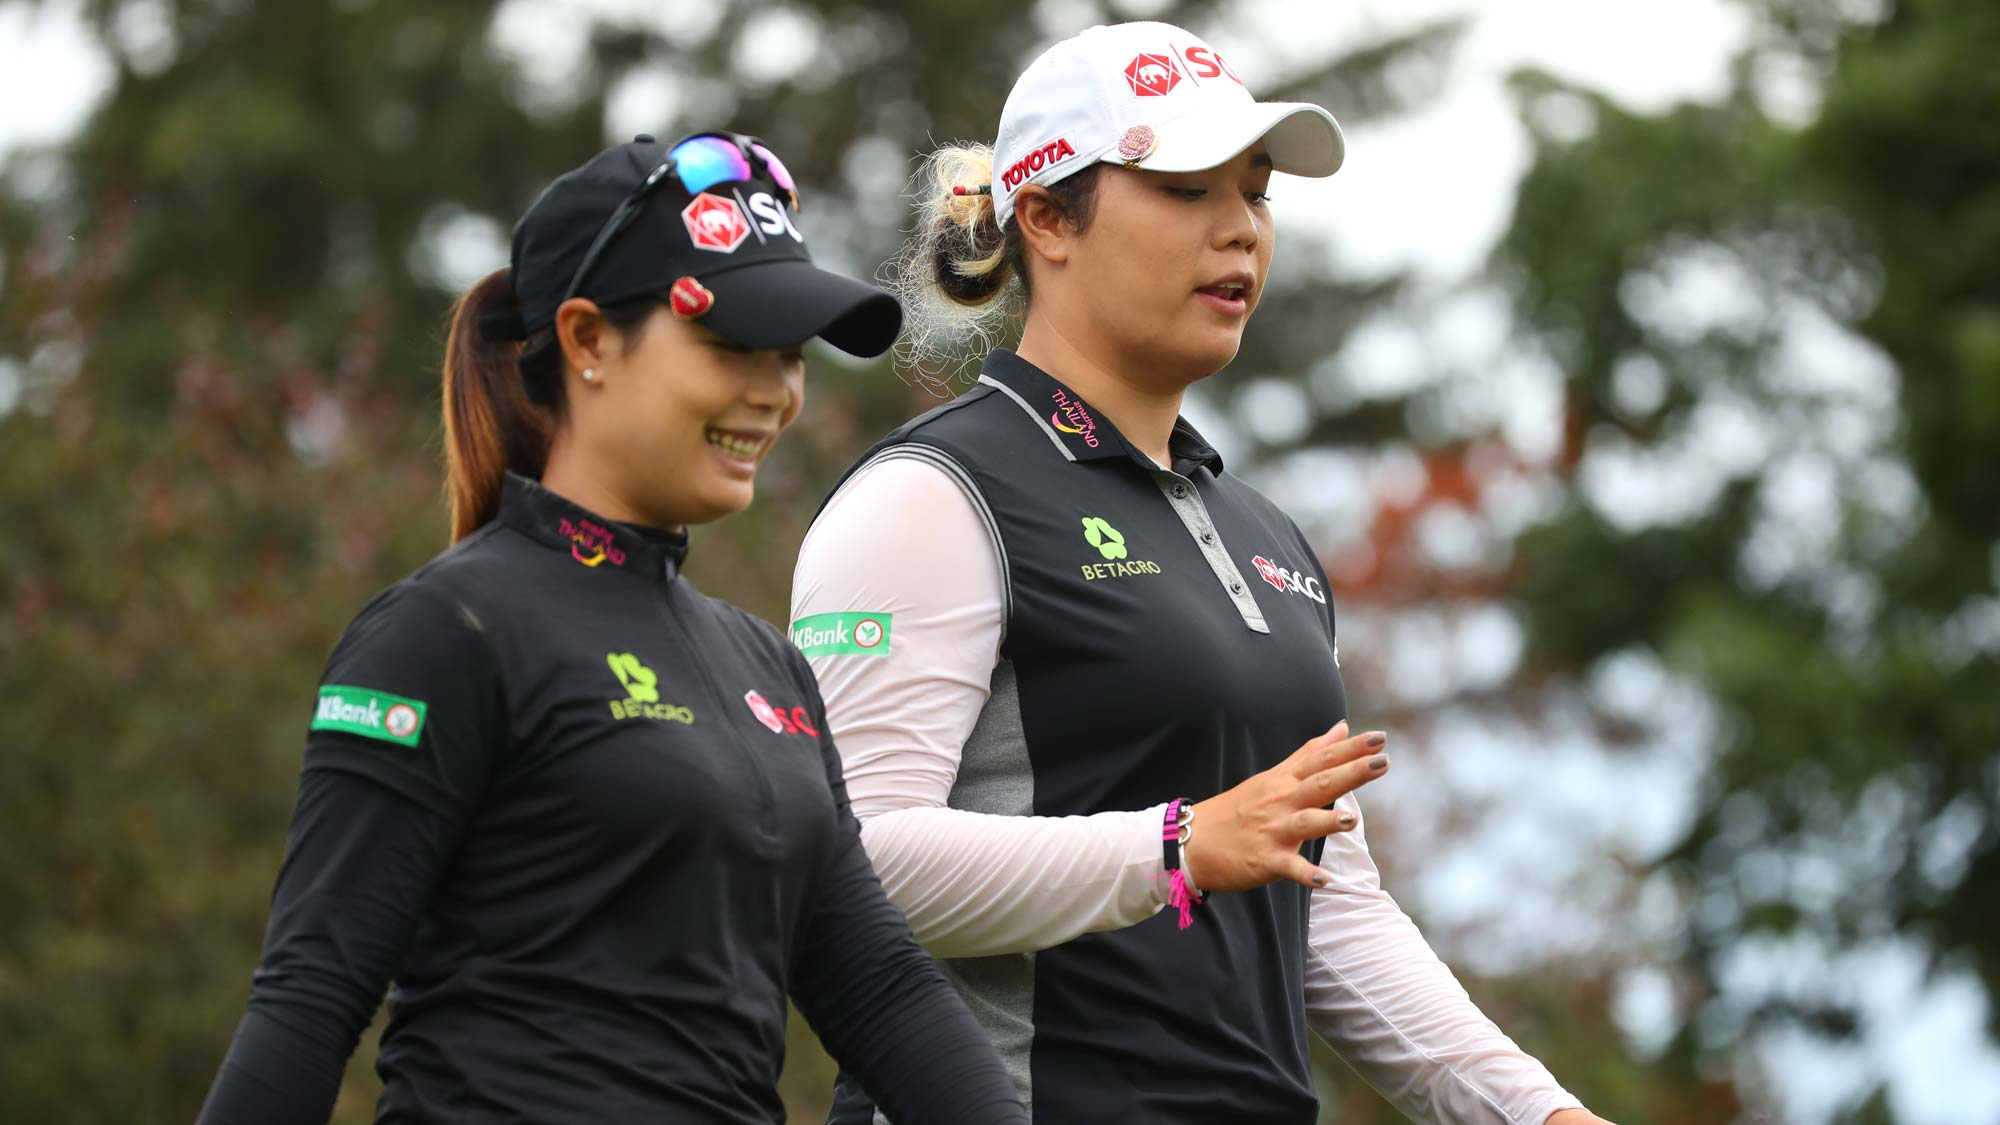 Teammates Moriya Jutanugarn (L) and Ariya Jutanugarn walk off the sixth tee during the final round of the Dow Great Lakes Bay Invitational